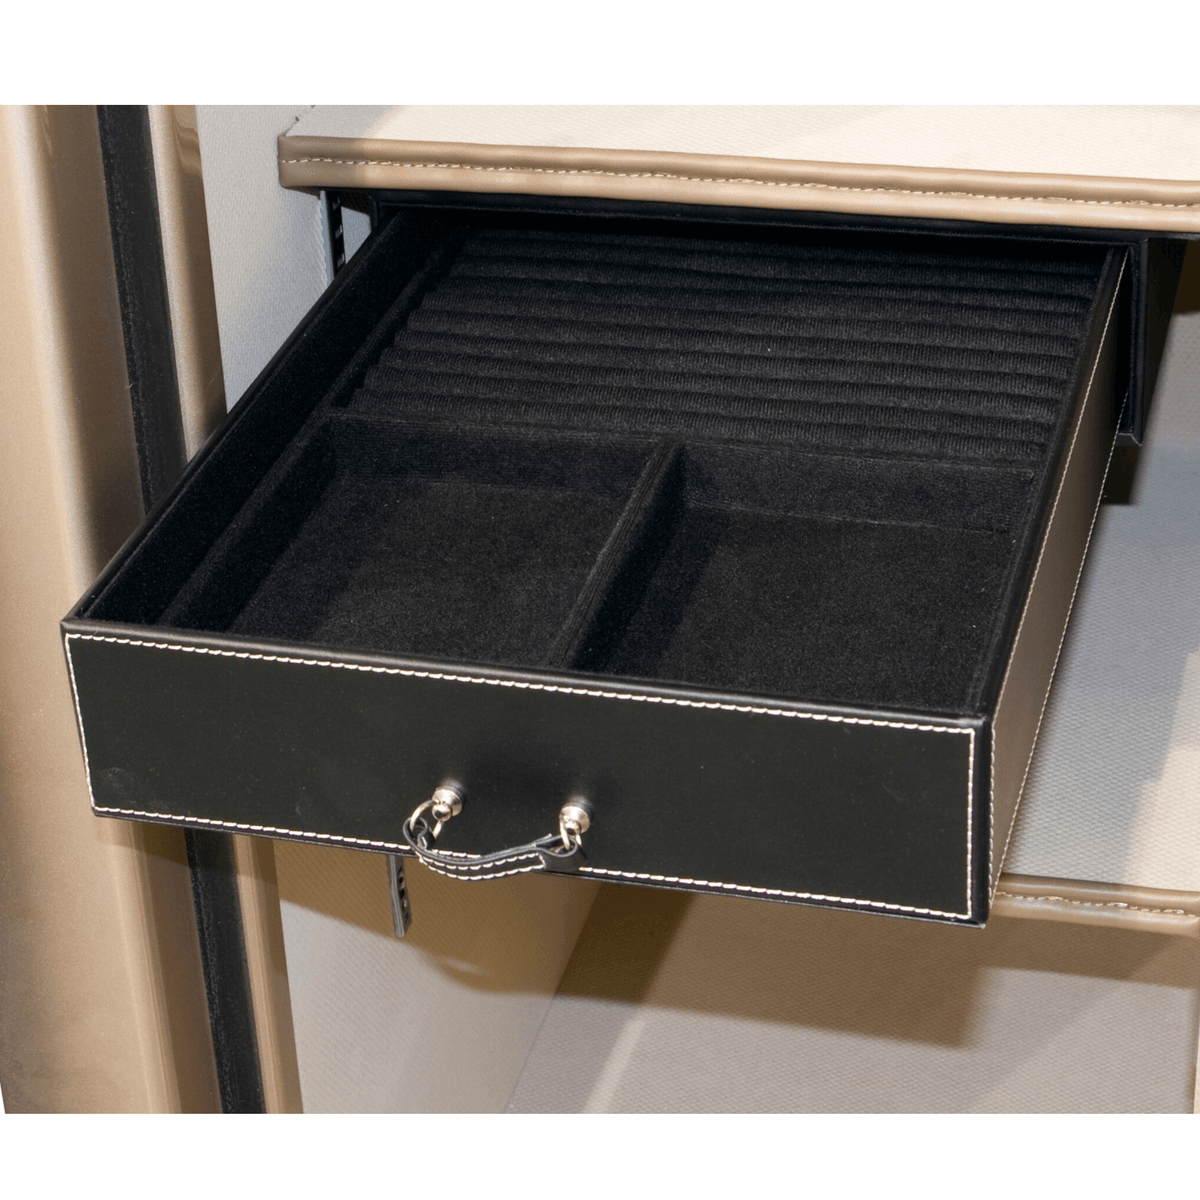 Accessory - Storage - Jewelry Drawer - 11.5 inch - under shelf mount - 35-50 size safes.